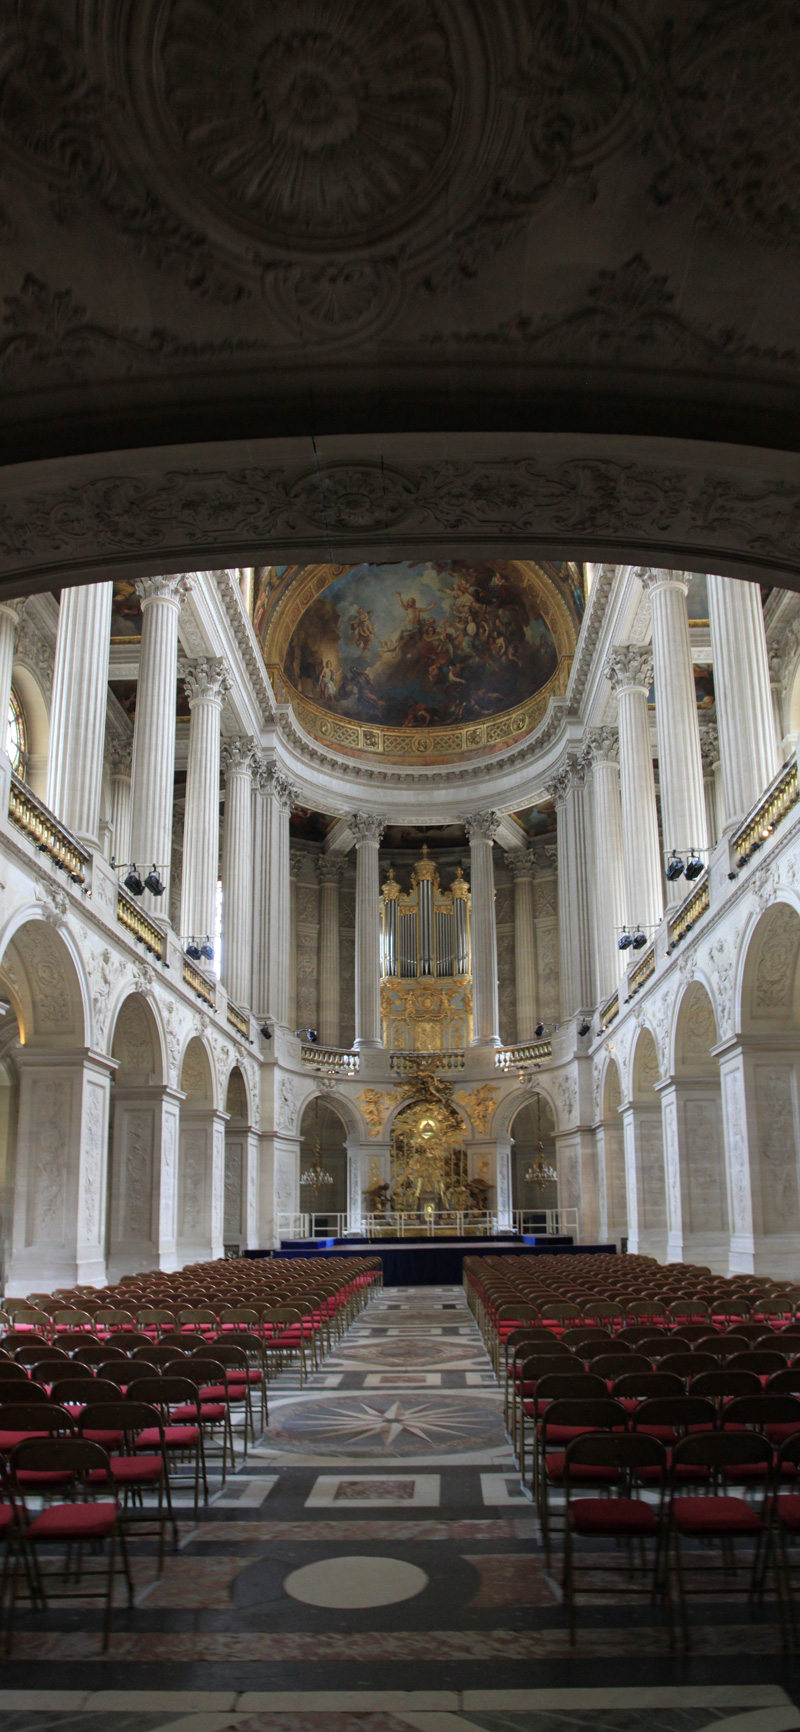 The Royal Chapel of Versailles